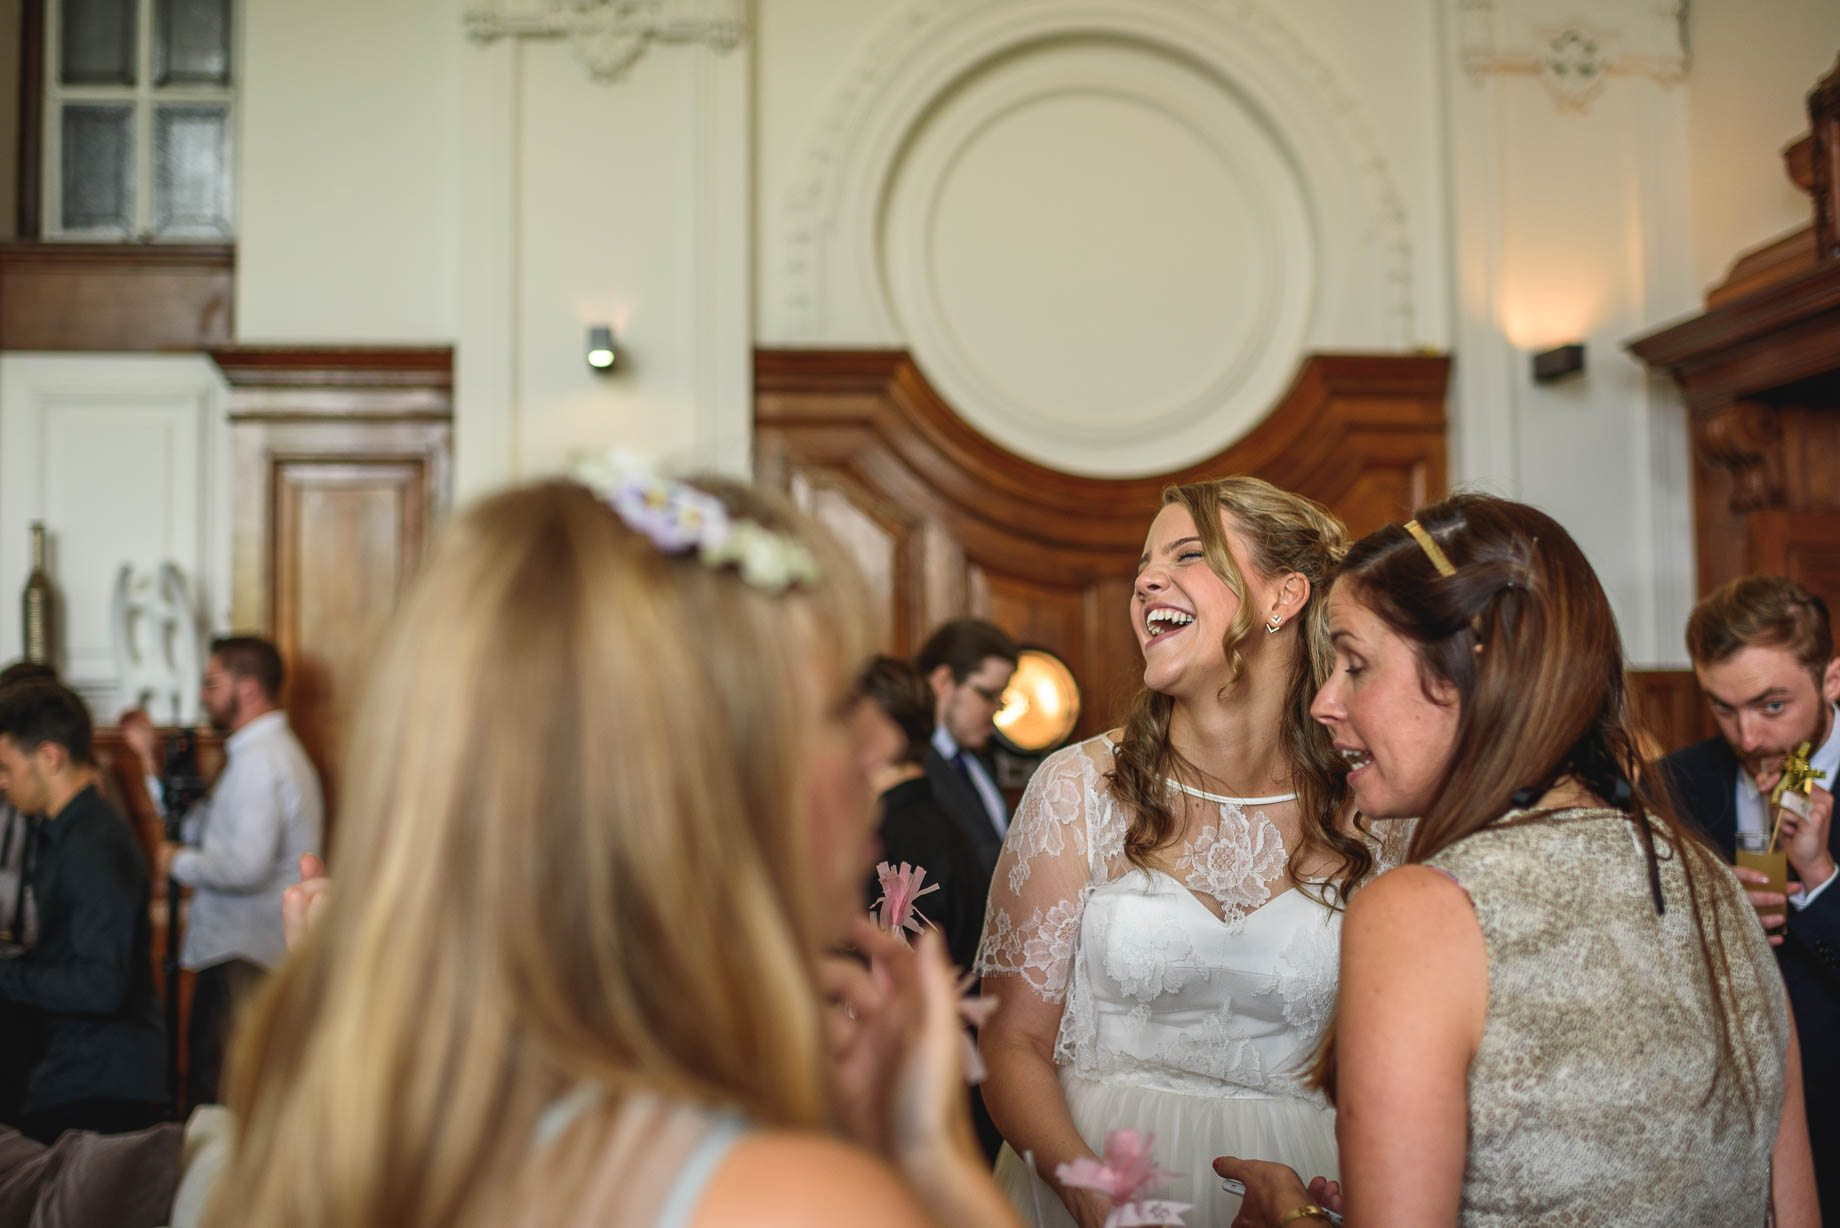 London Wedding Photography - Guy Collier Photography - LJ + Russell (79 of 155)